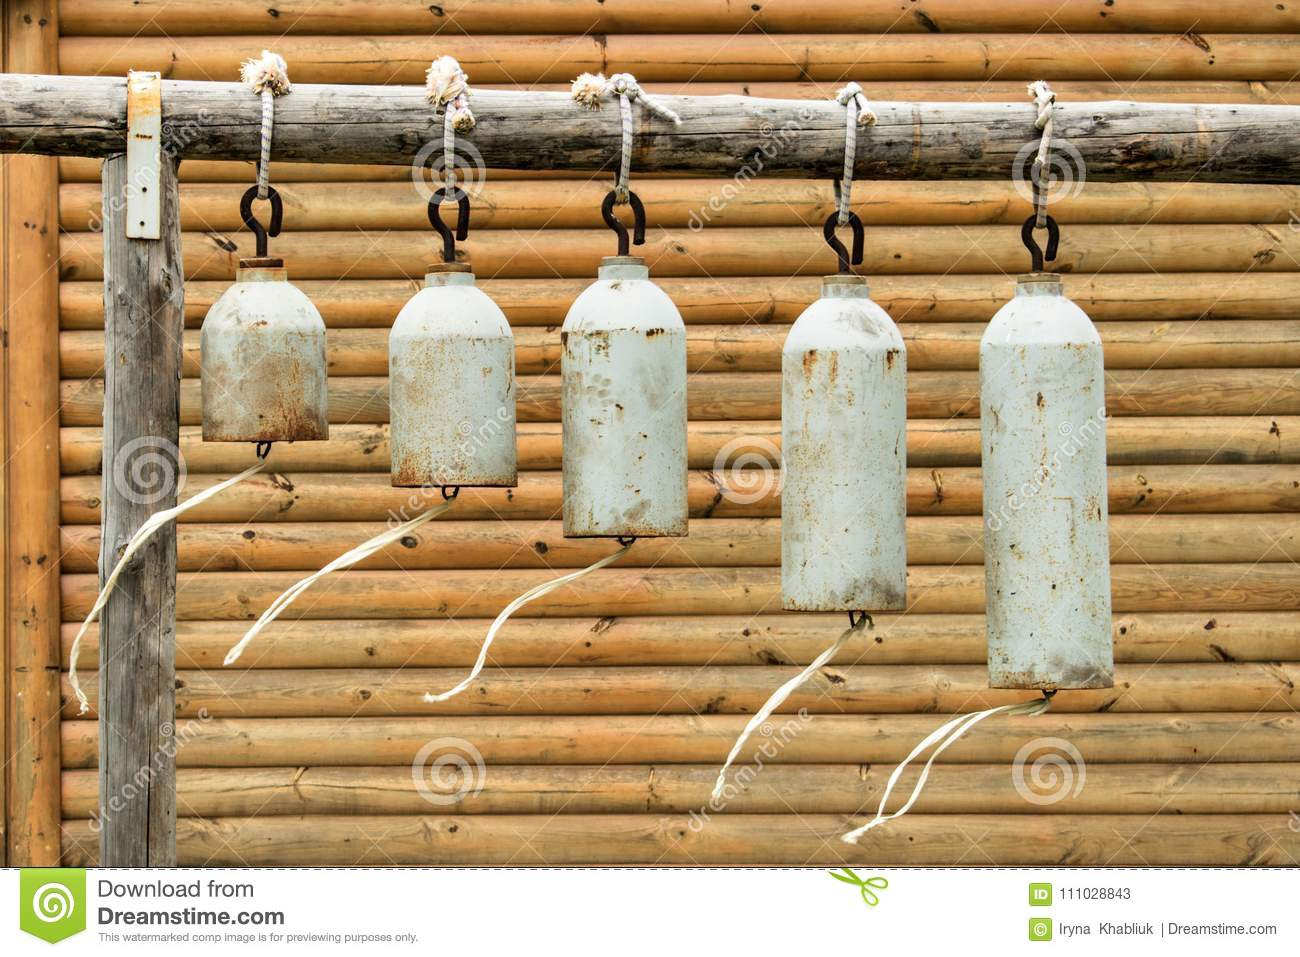 Many modern church bells hanging outside on the background of a wooden wall